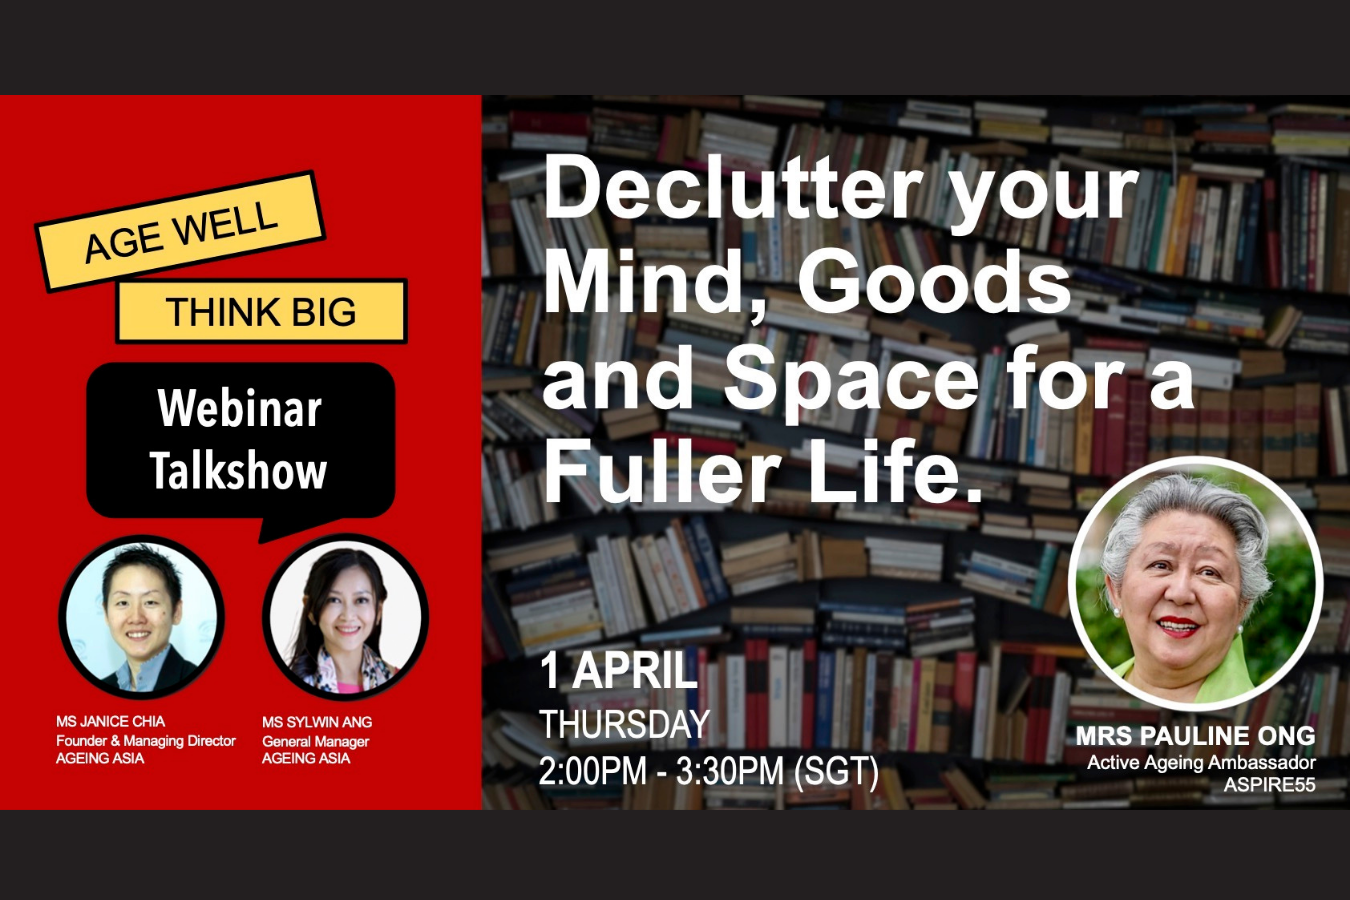 Webinar Replay of Declutter your Mind, Goods and Space for a Fuller Life with Mrs Pauline Ong